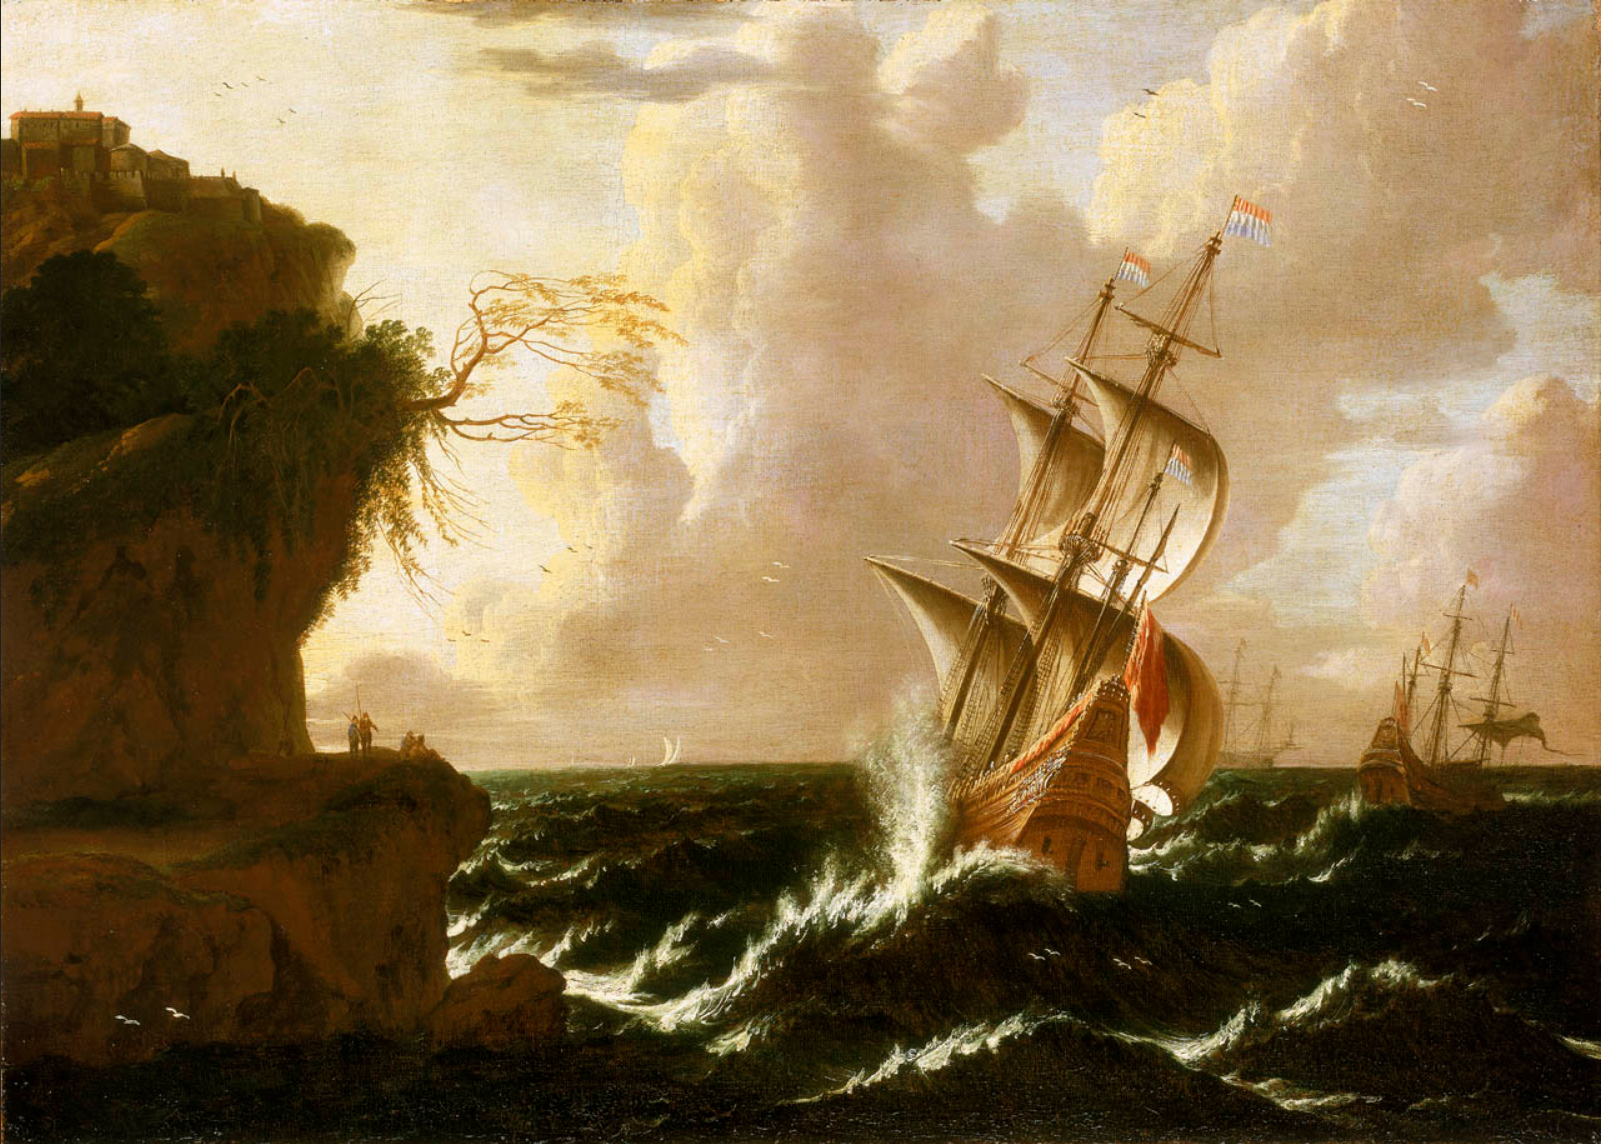 Matthieu van Plattenberg - A Dutch Ship in a Storm